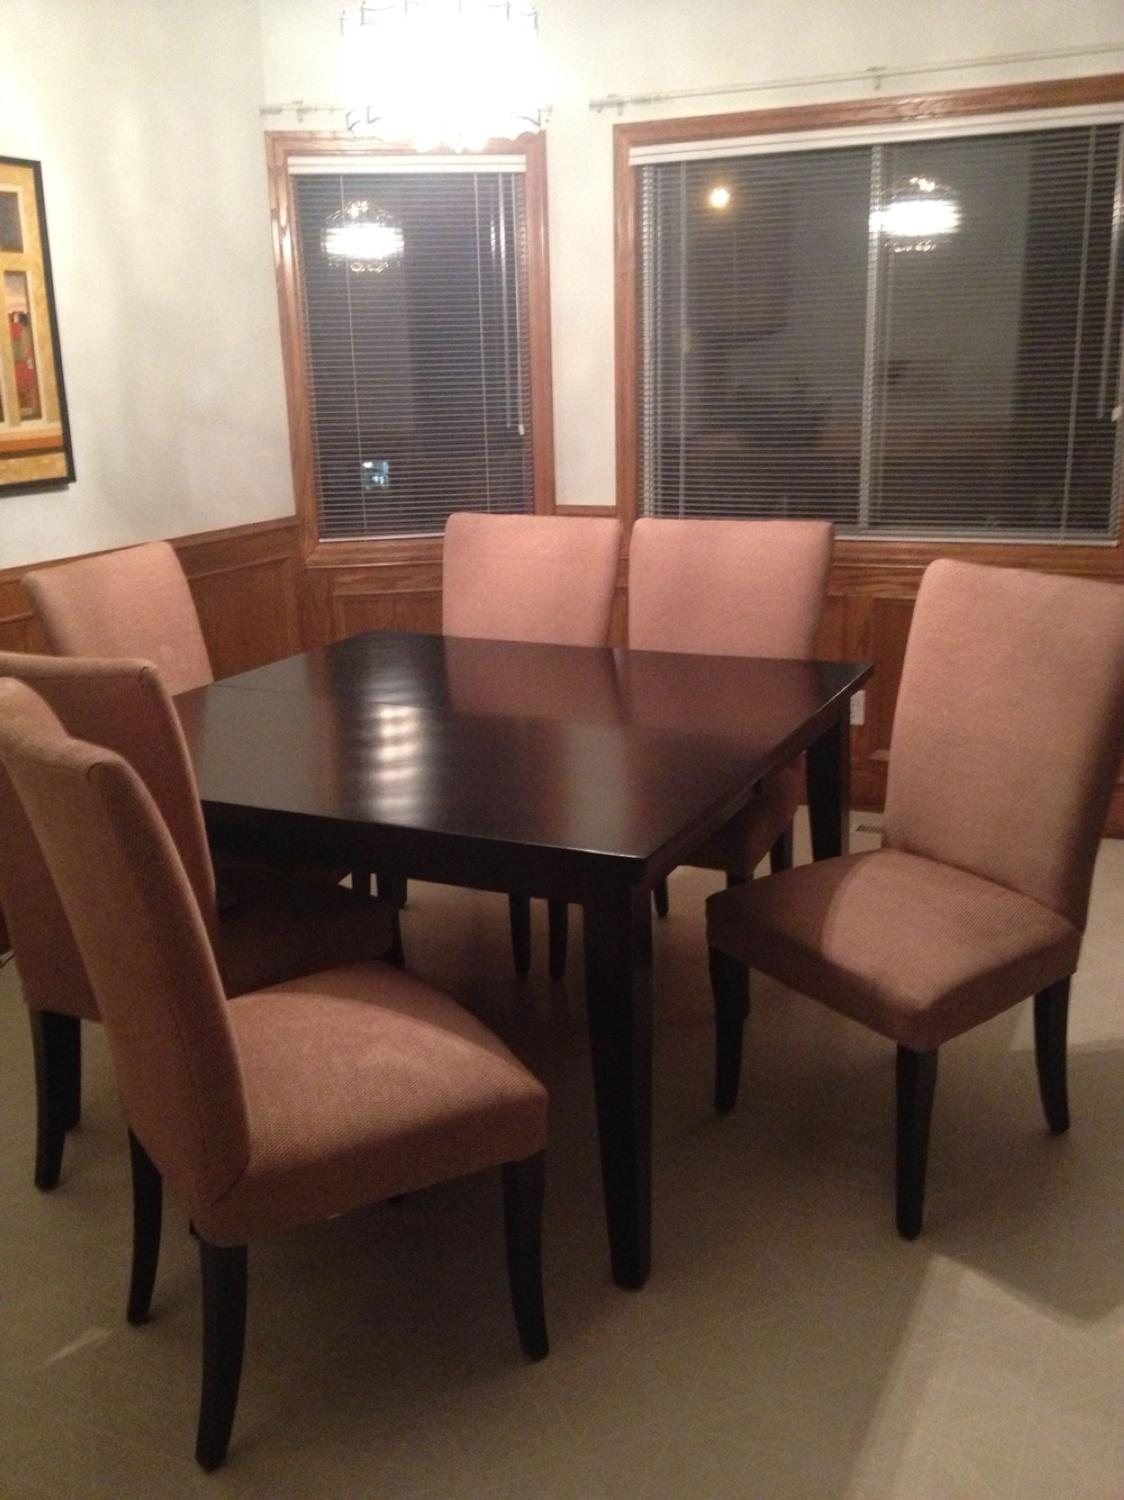 Ashley furniture kitchen table with chairs. Solid wood table. Oversized  chairs make it great for sitting around the tbl. Comes with leaf.